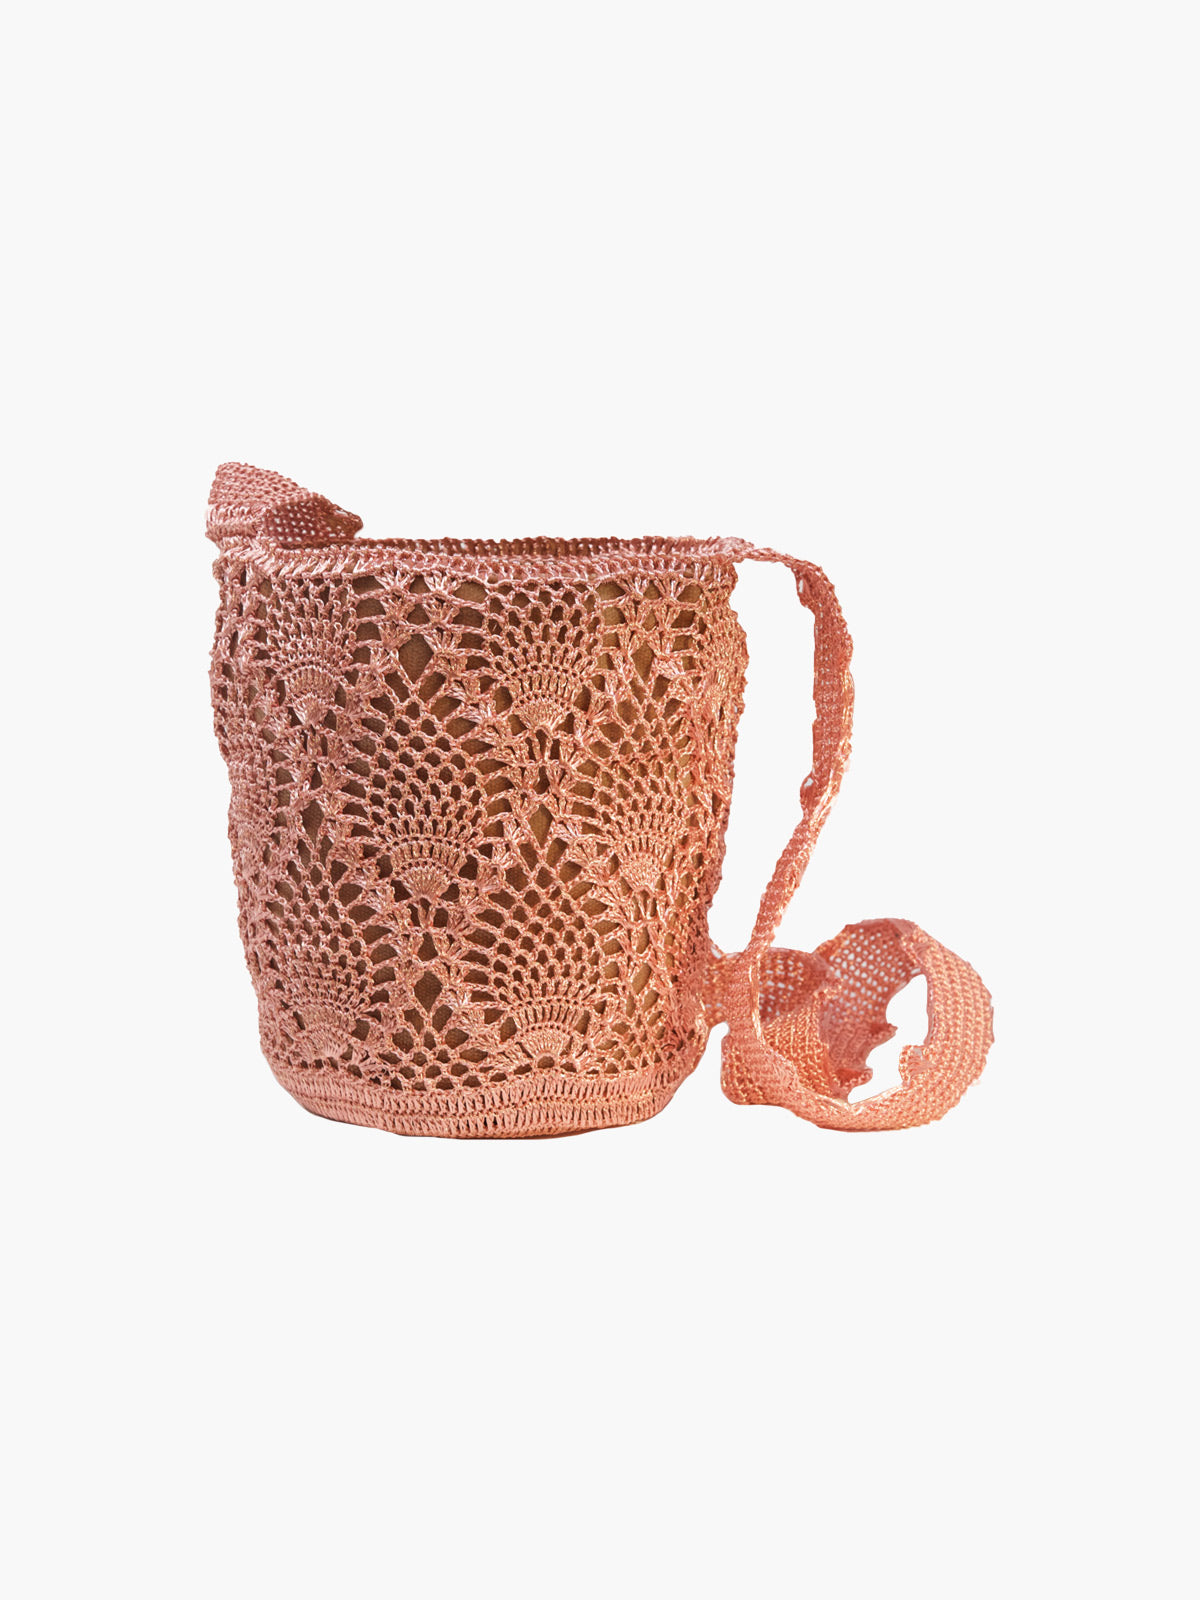 Pineapple Weave Mochila | Rose Gold & Rose